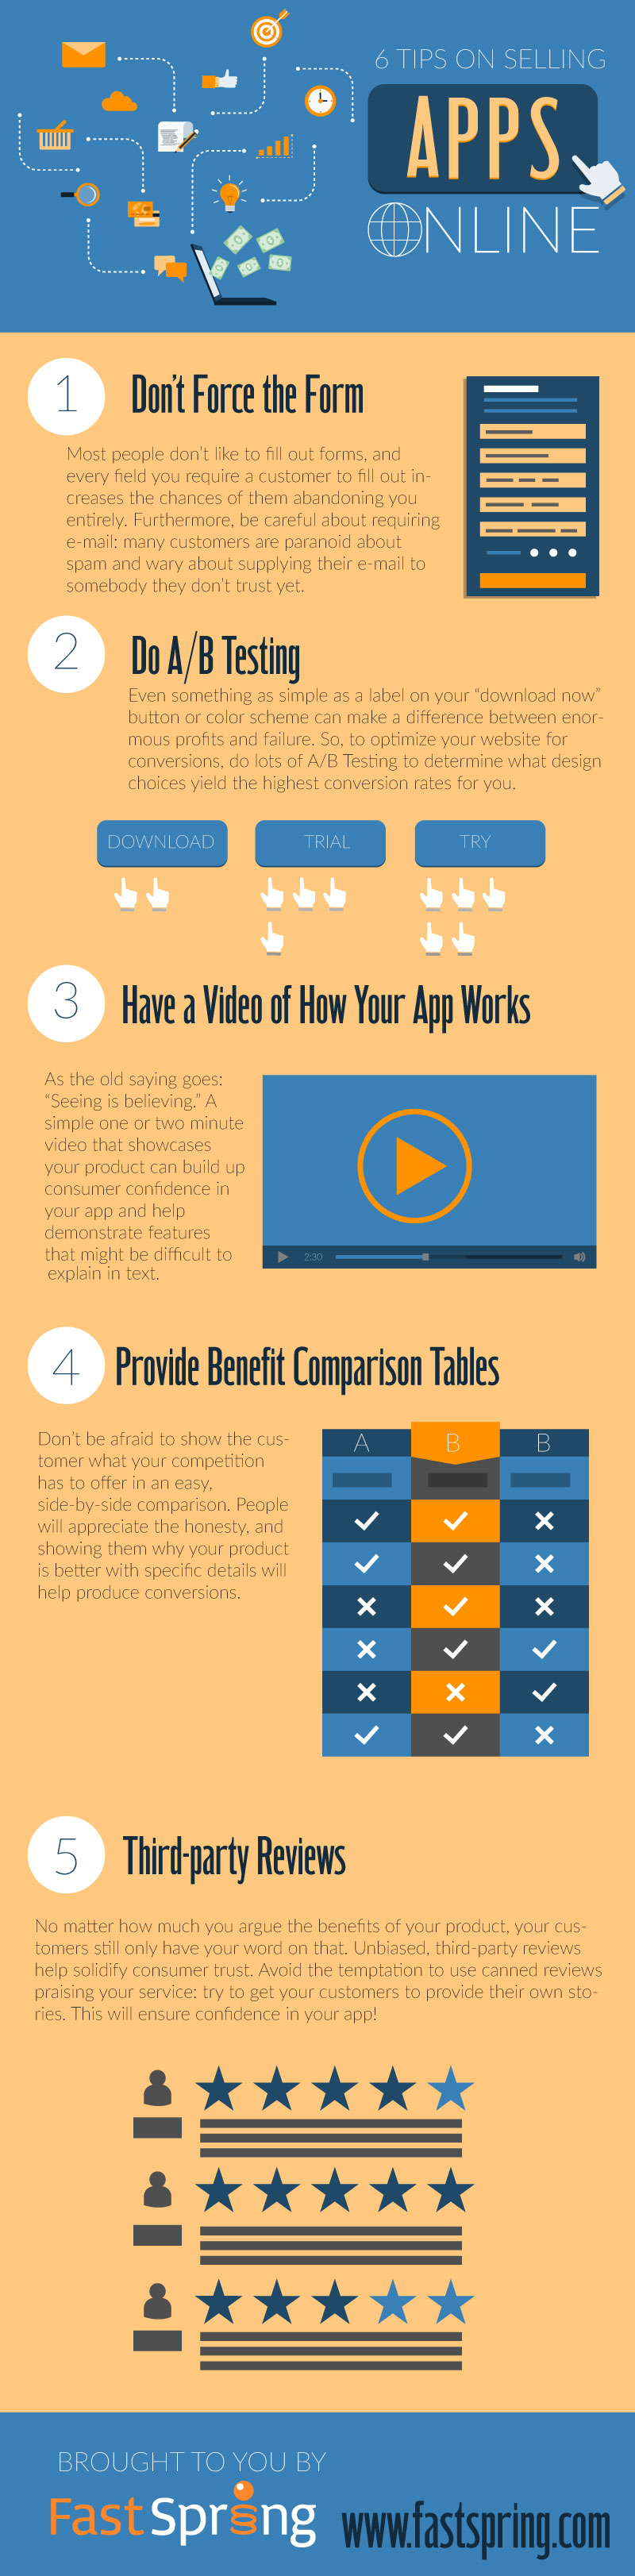 6 Tips on Selling Apps Online Infographic